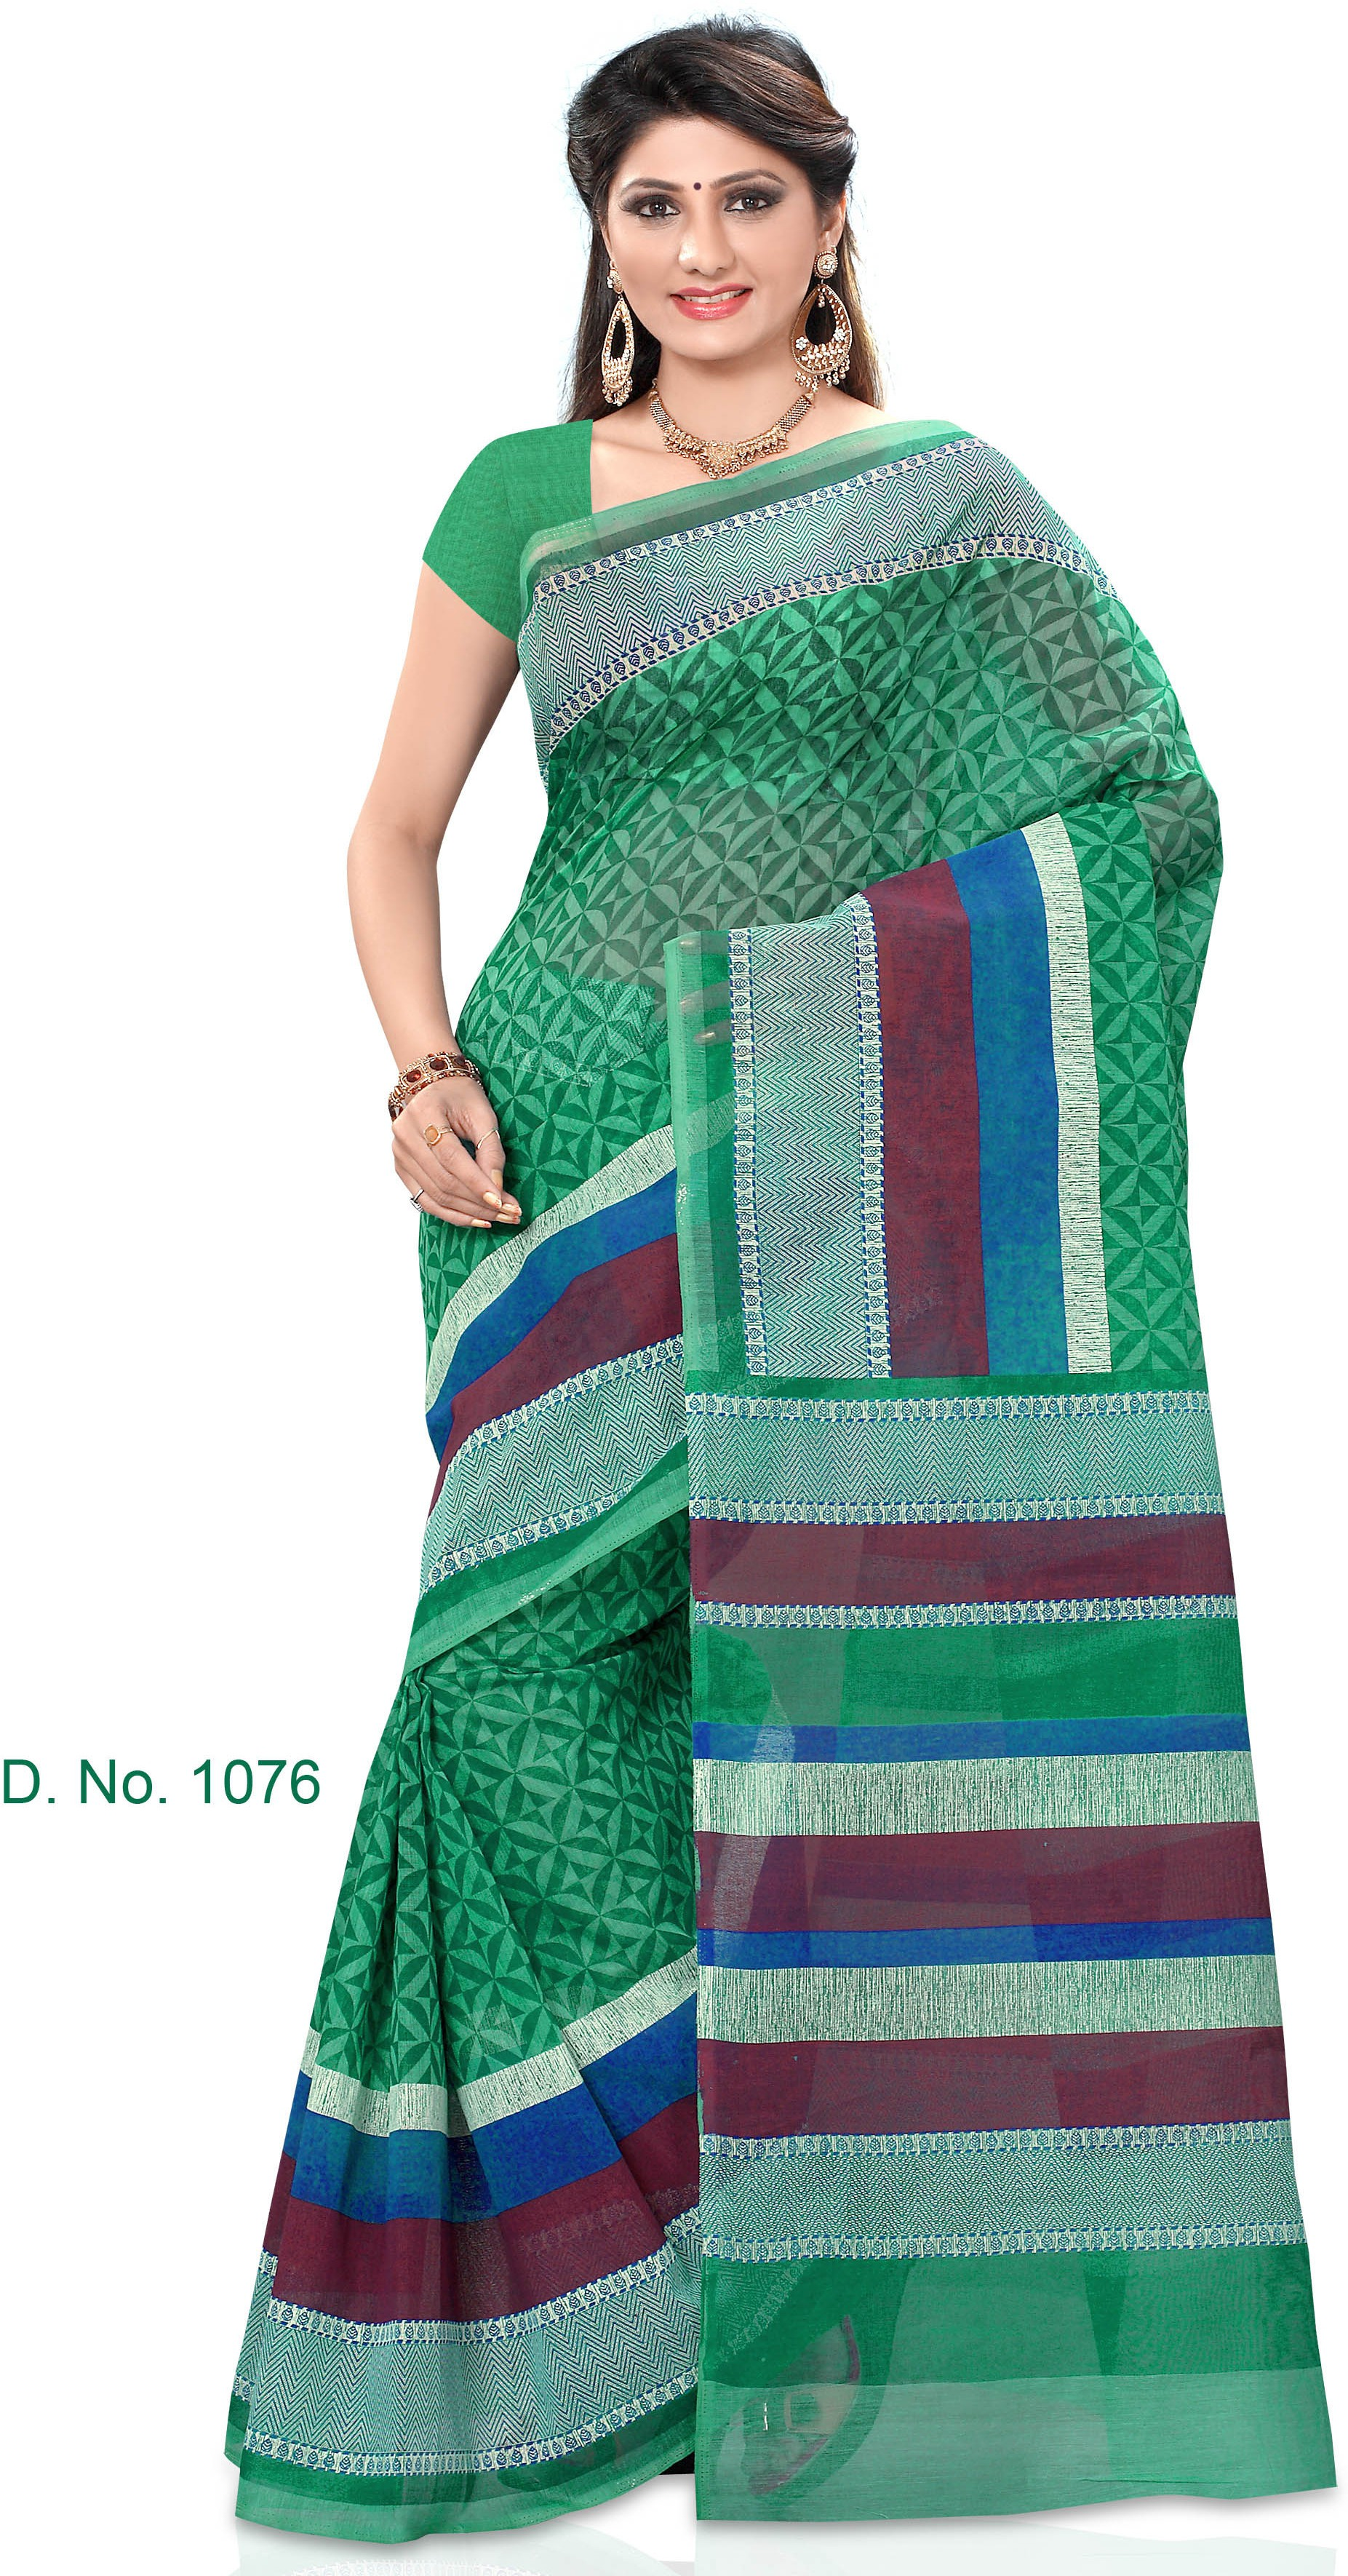 Indianbeauty Striped, Printed Fashion Cotton Sari